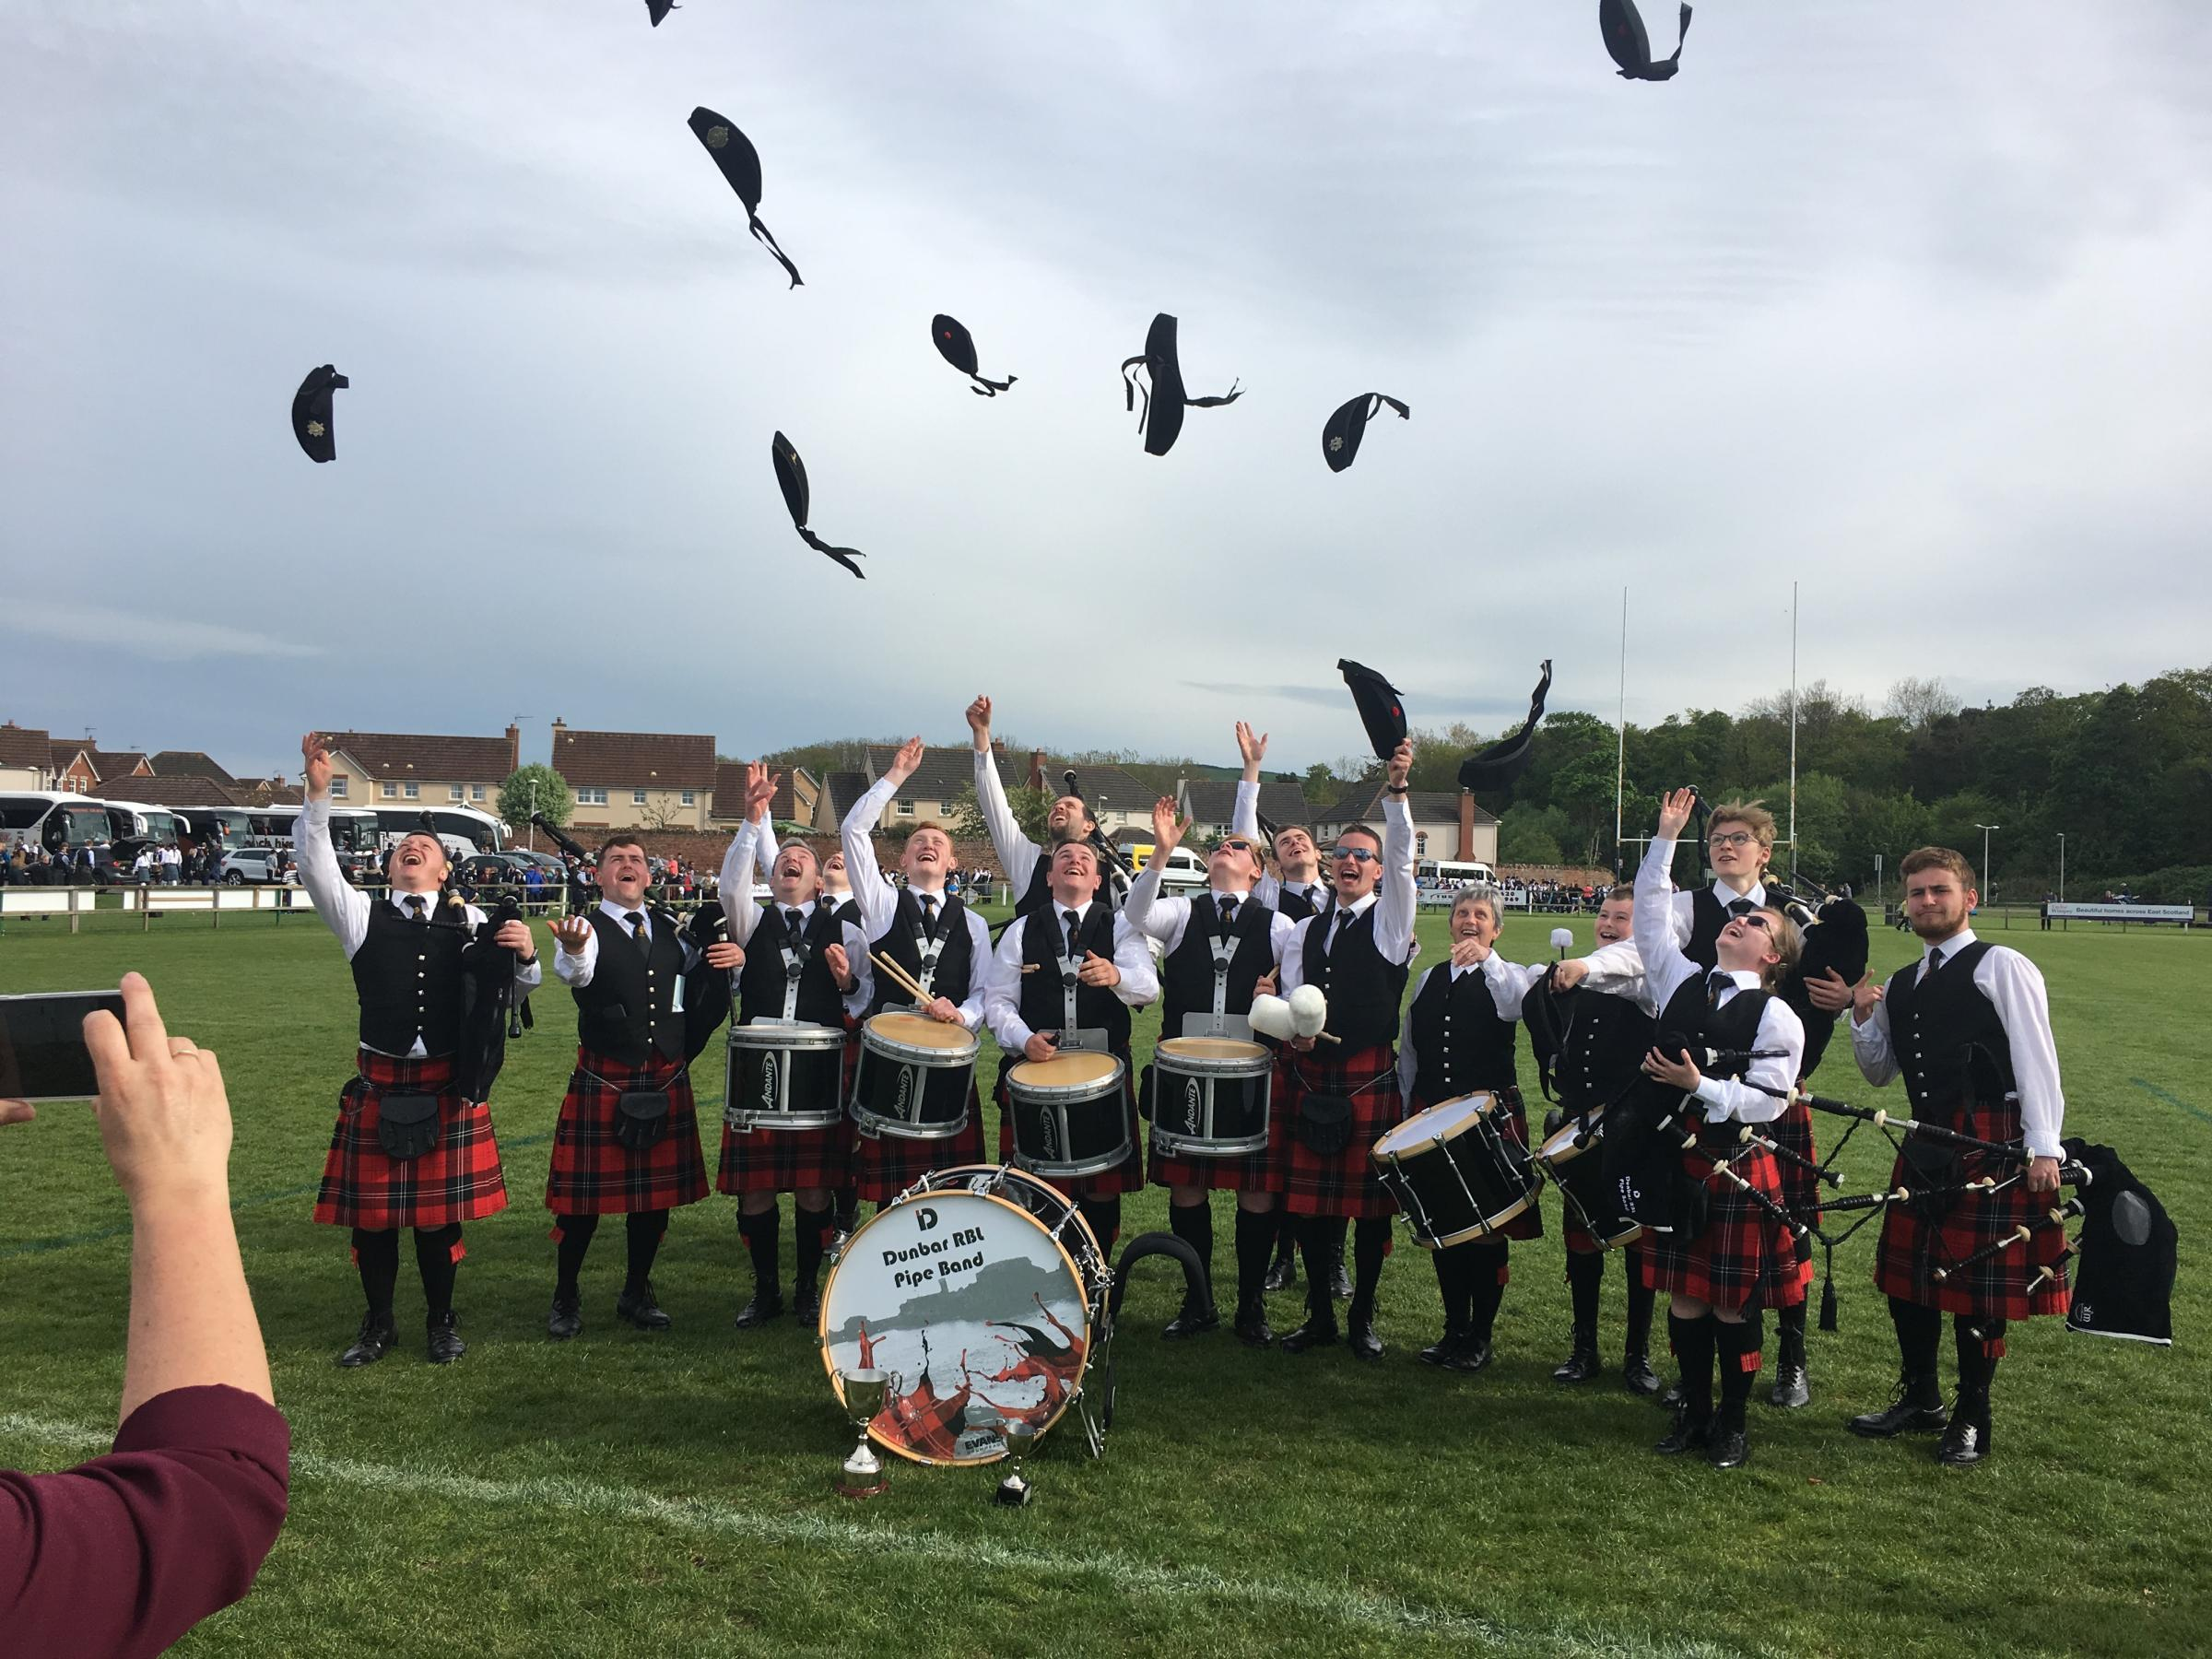 Dunbar Royal British Legion Pipe Band toasted success at the Dunbar Pipe Band Championships on Saturday. Picture: Malcolm Payton